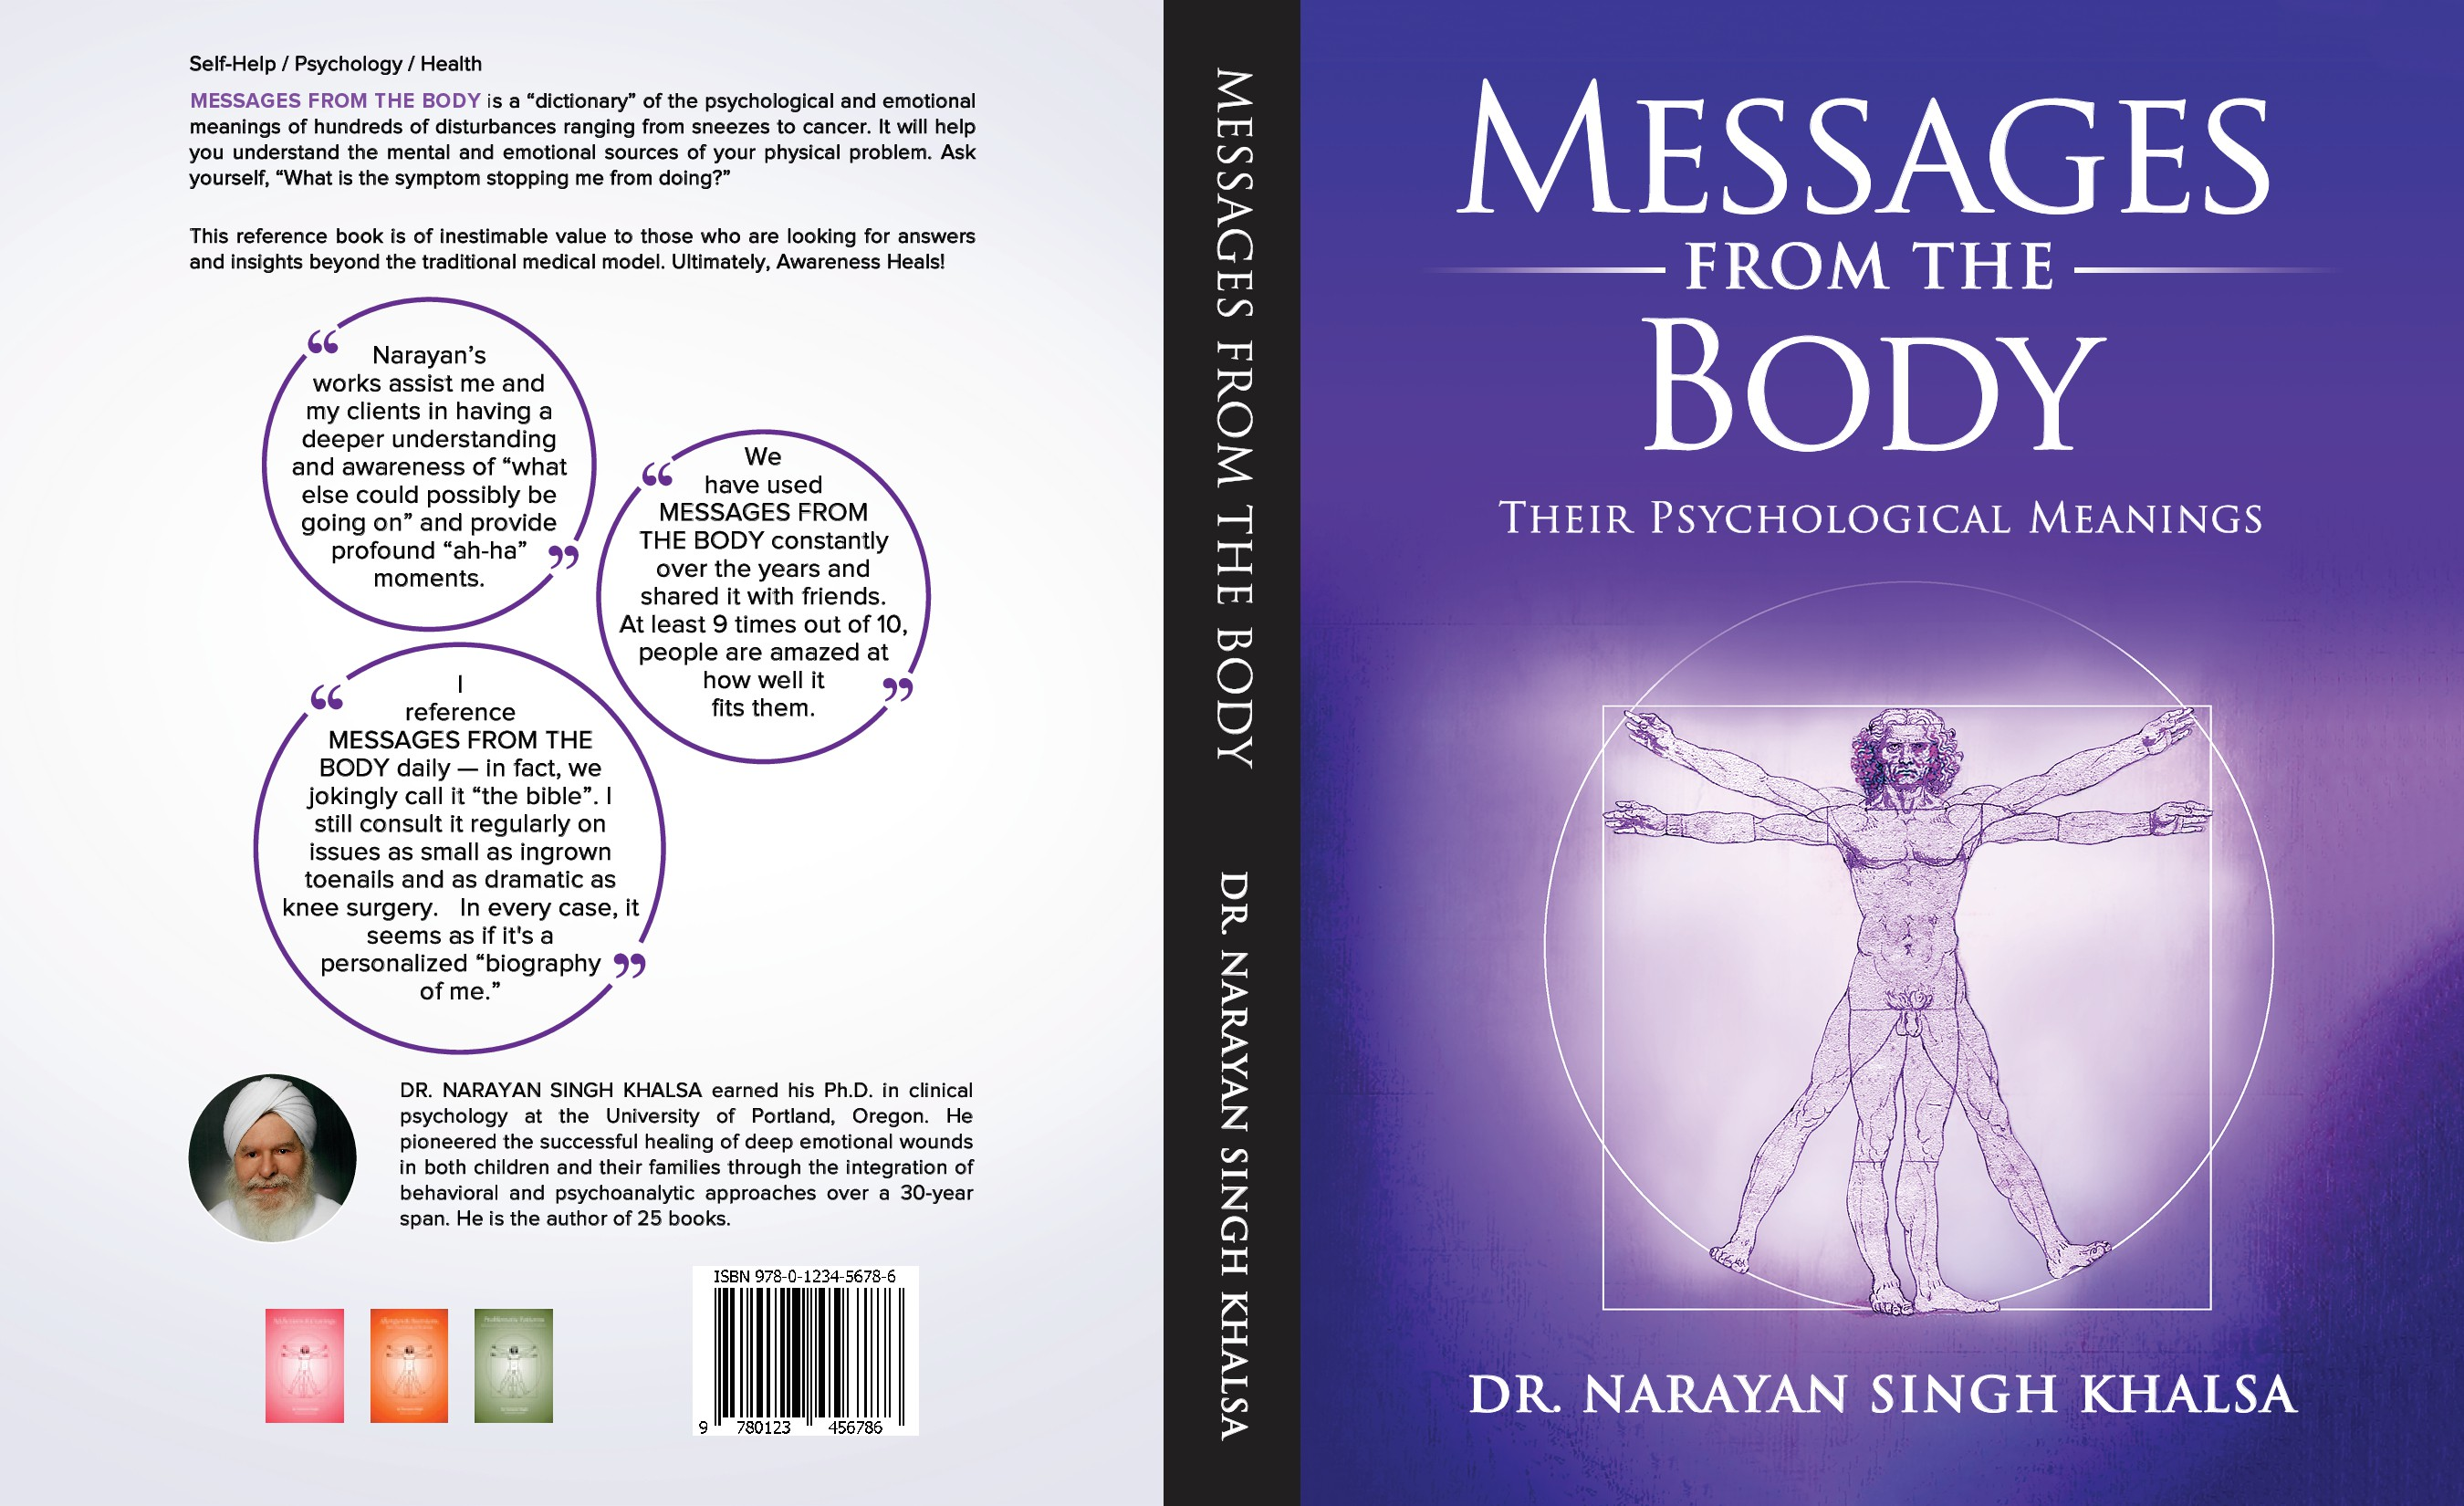 Redesign book cover for Messages From The Body, the psychological meanings of every illness.